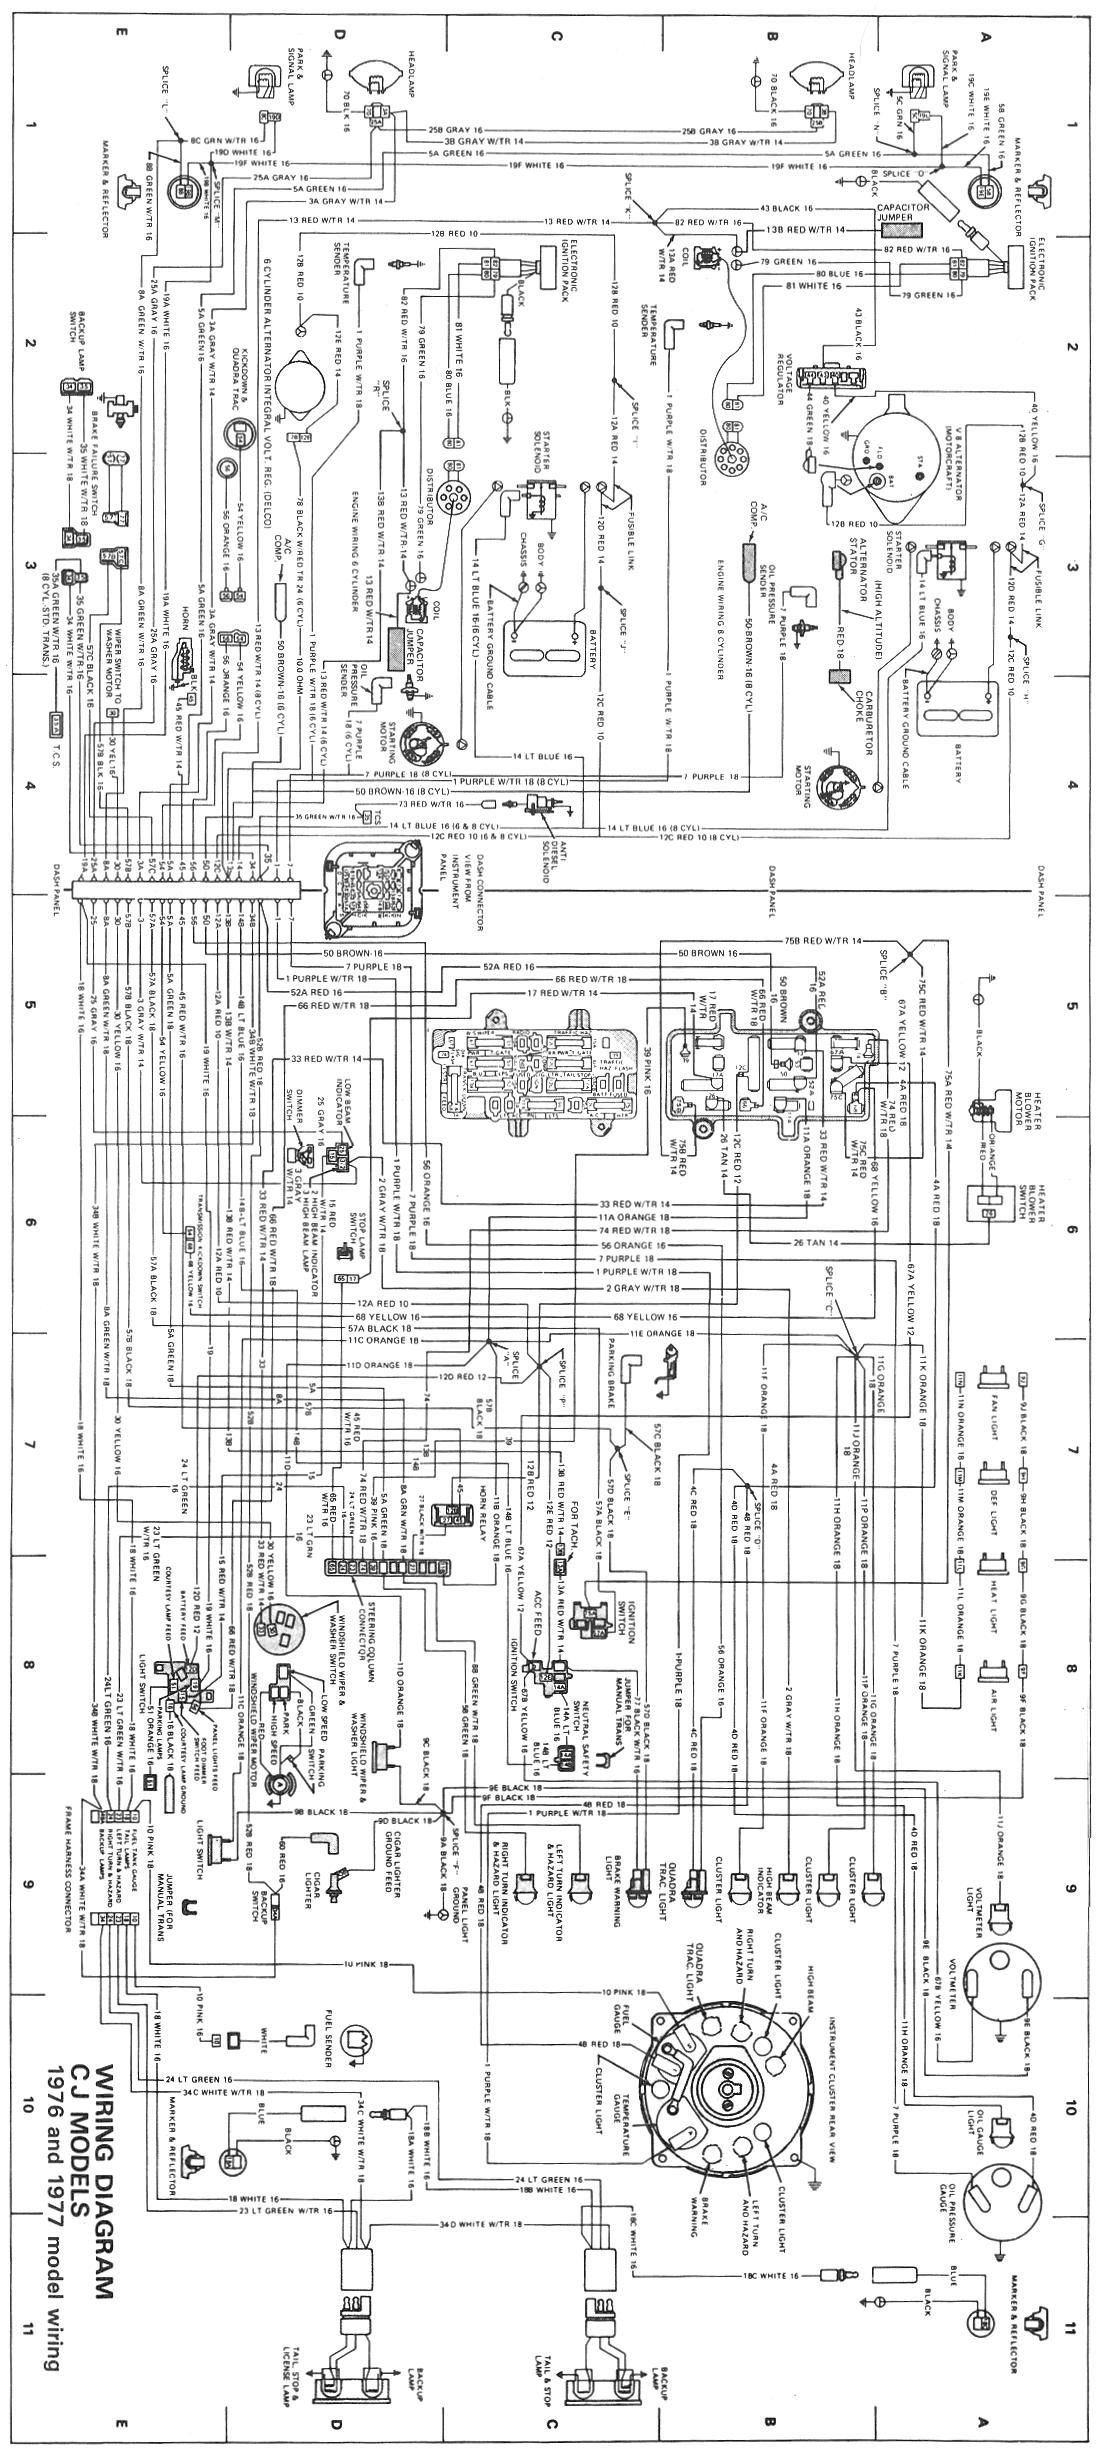 jeep cj5 wiring diagram under hood detailed detailed schematics rh highcliffemedicalcentre com willys cj3b wiring diagram willys cj3b wiring diagram